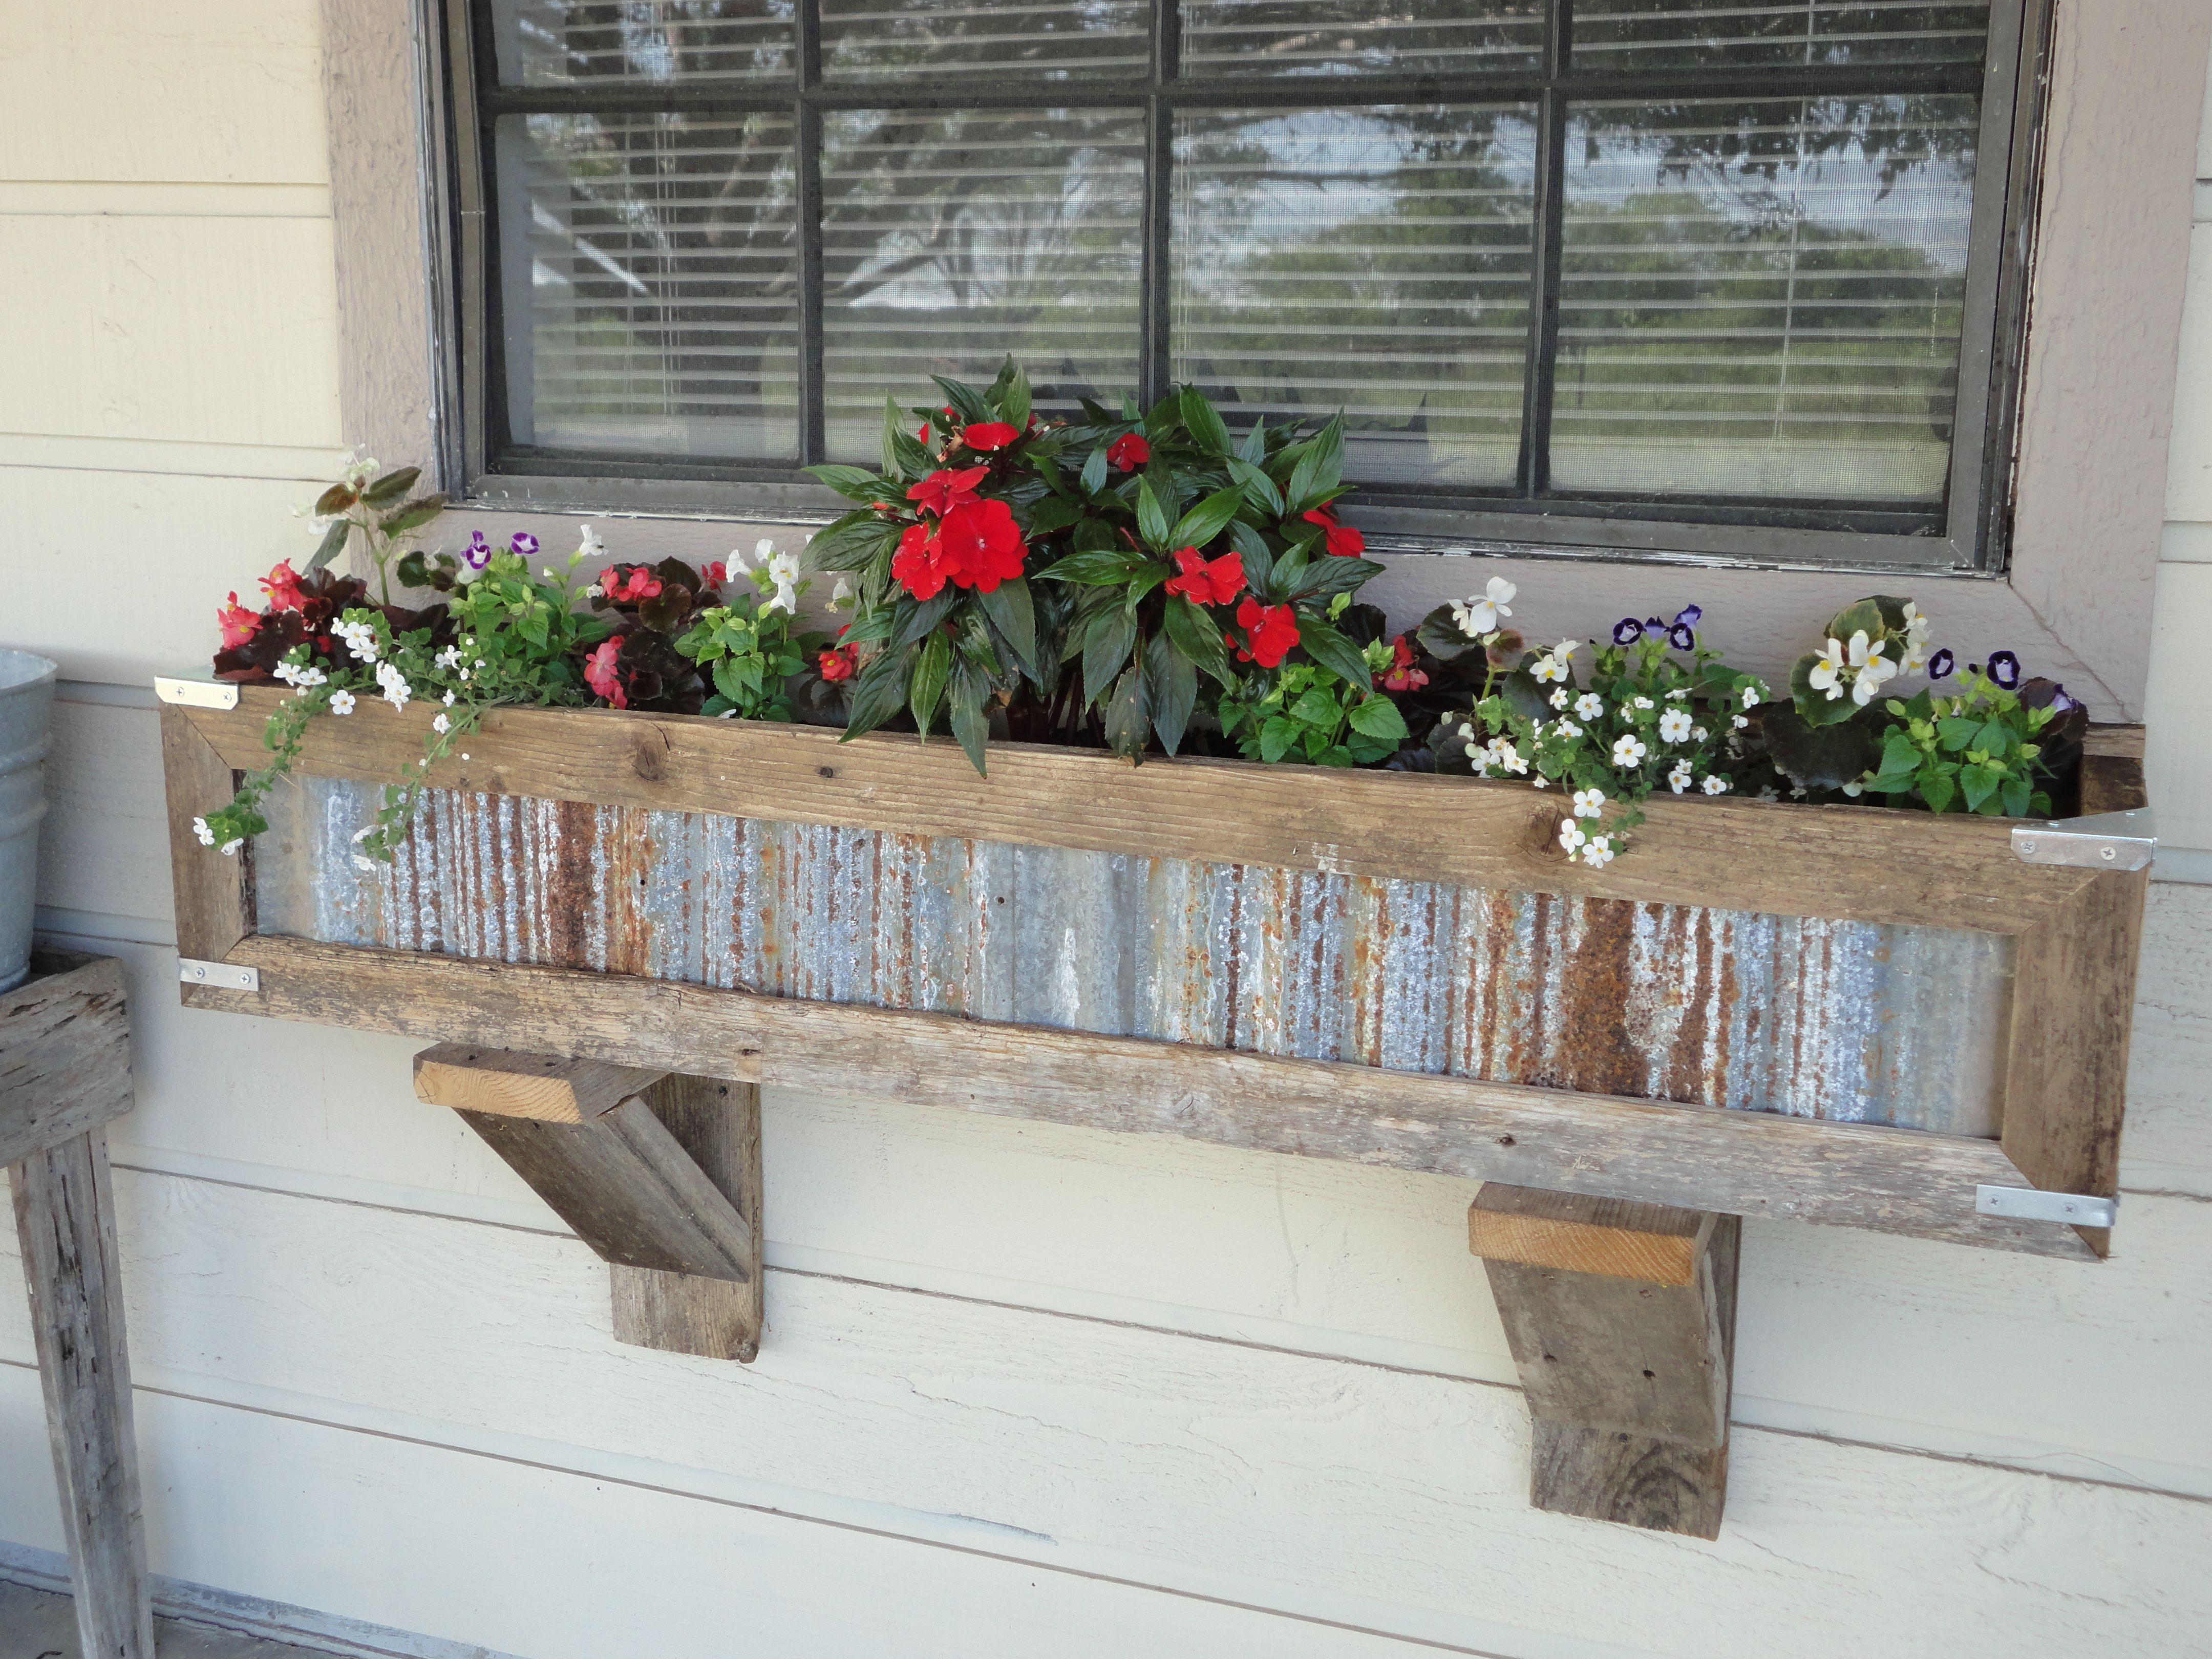 mediterranean gorgeous flower style with balcony baclcony window flowers box planter boxes pictures beautiful in